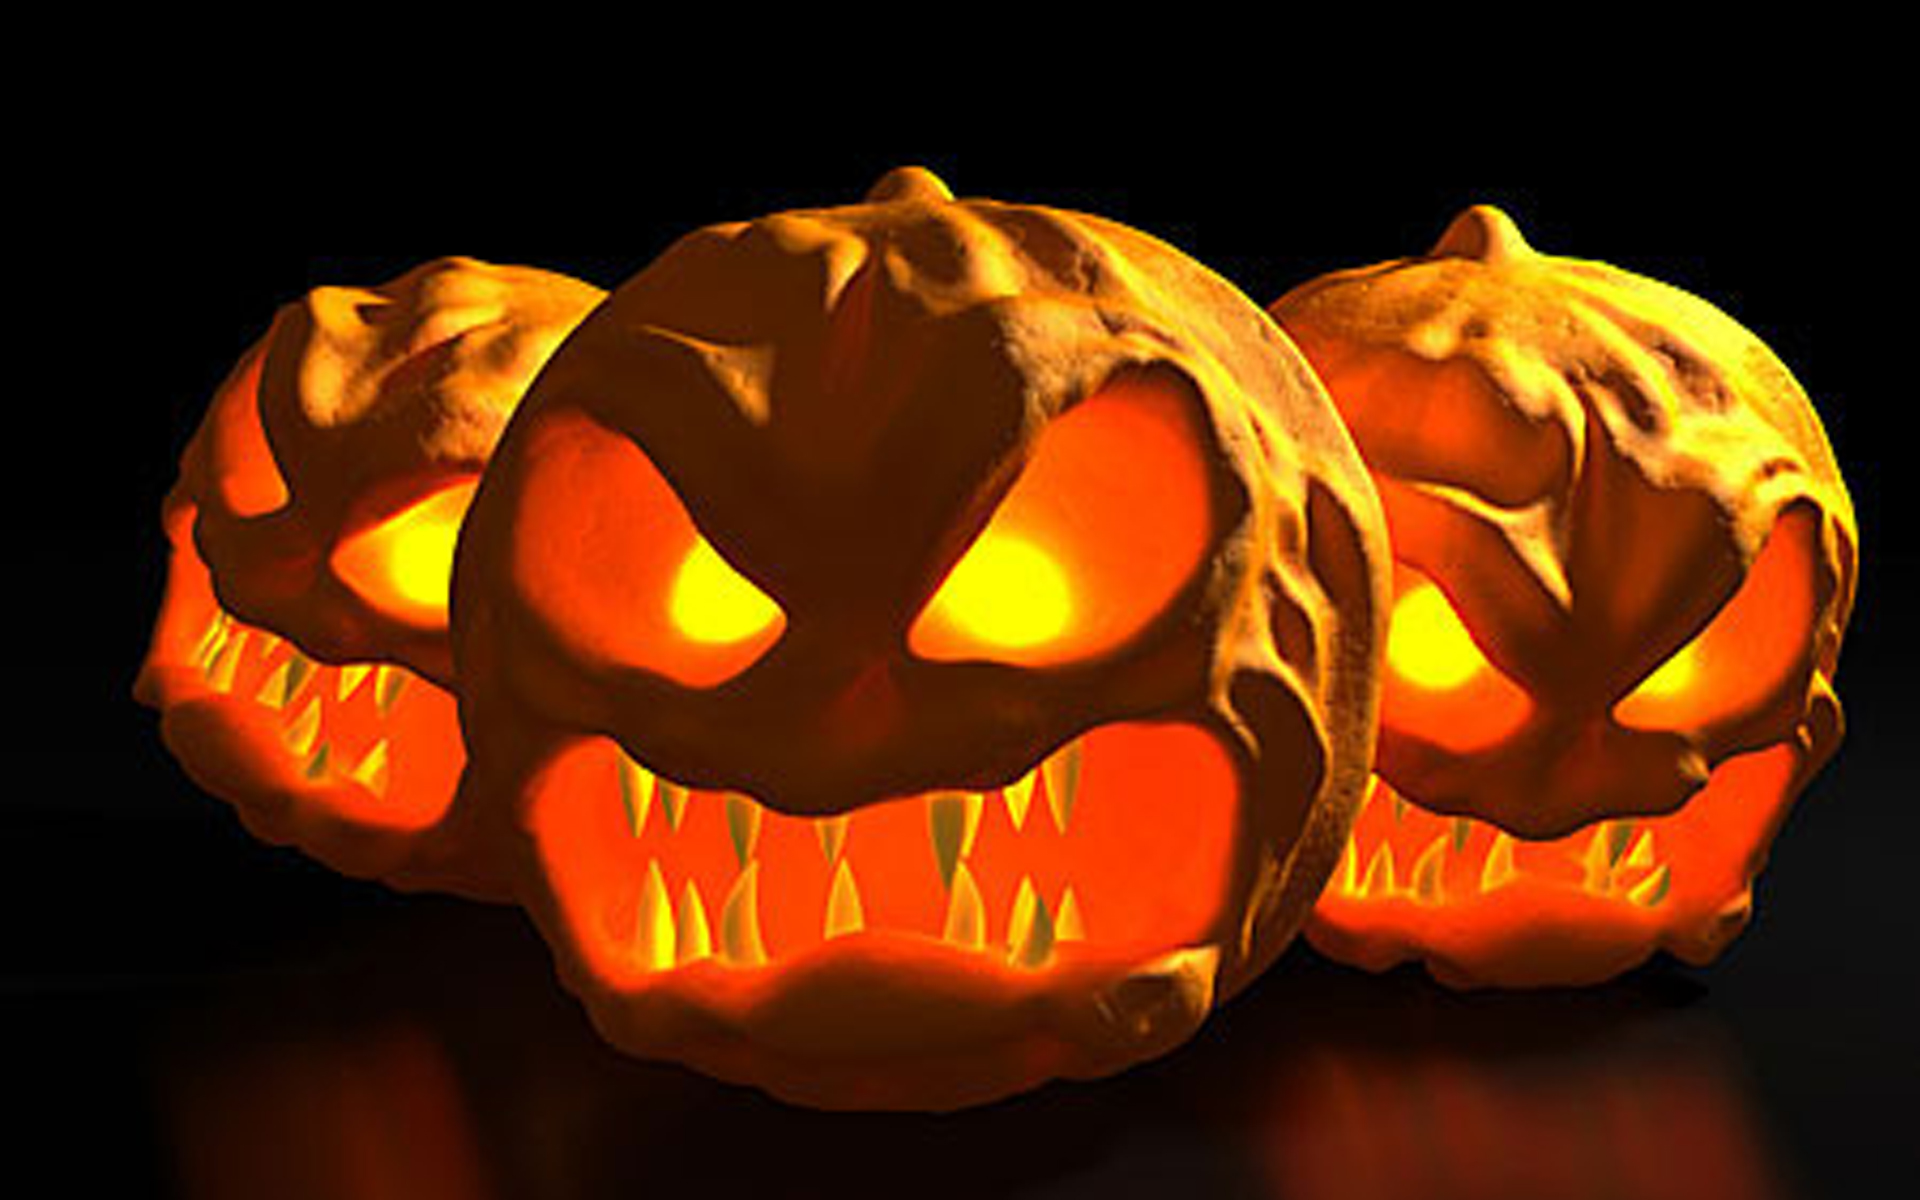 Scary fangs halloween pumpkin carving creative ads and more Halloween pumpkin carving ideas